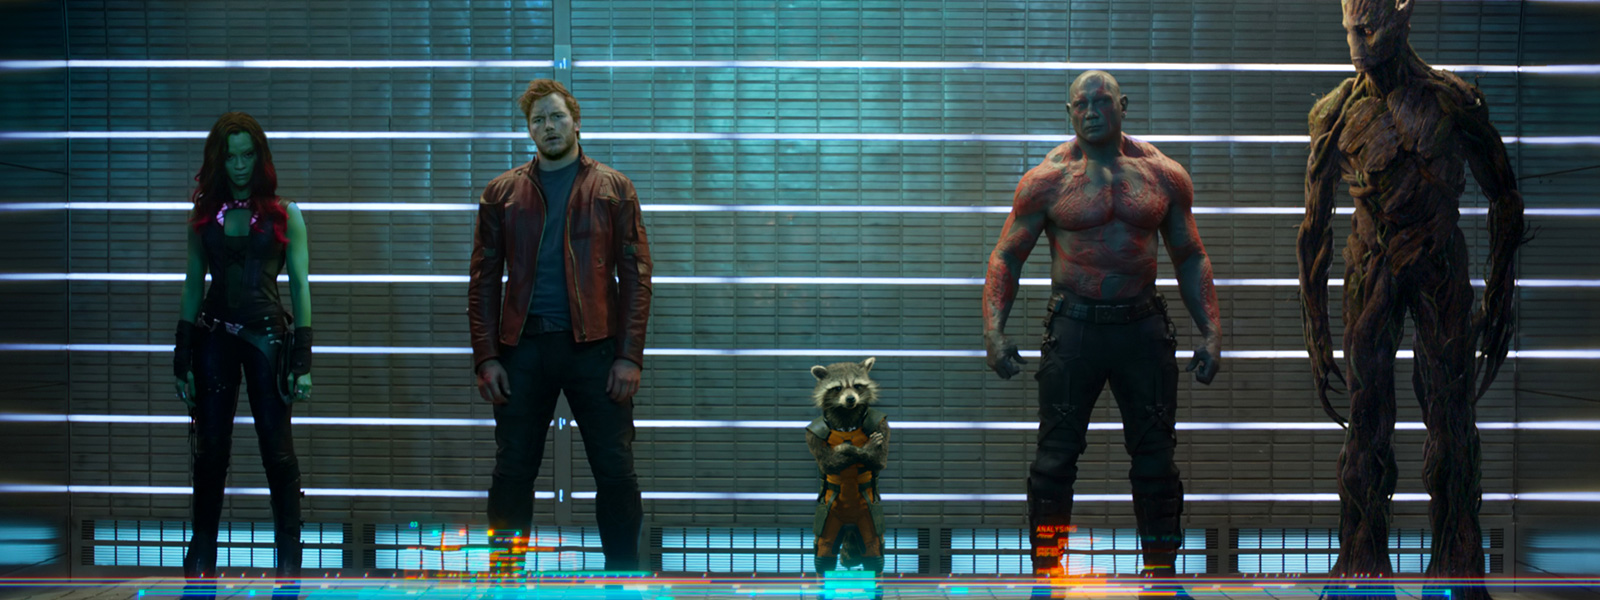 an analysis of the intergalactic battle with a band of misfits in the film guardians of the galaxy b